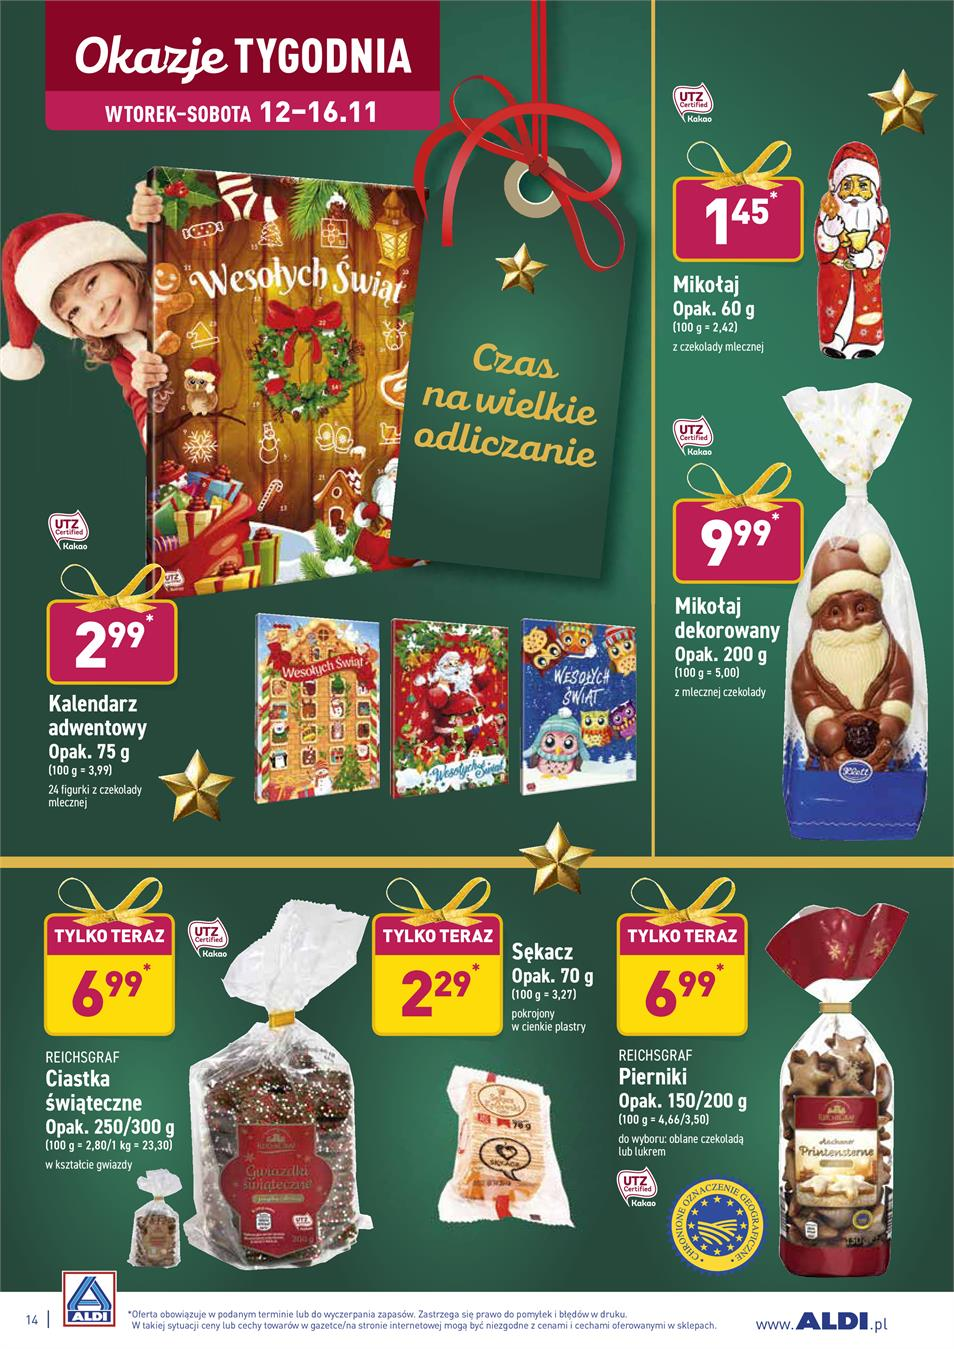 Gazetka ALDI SP Z O O  nr 14 od 2019-11-12 do 2019-11-16